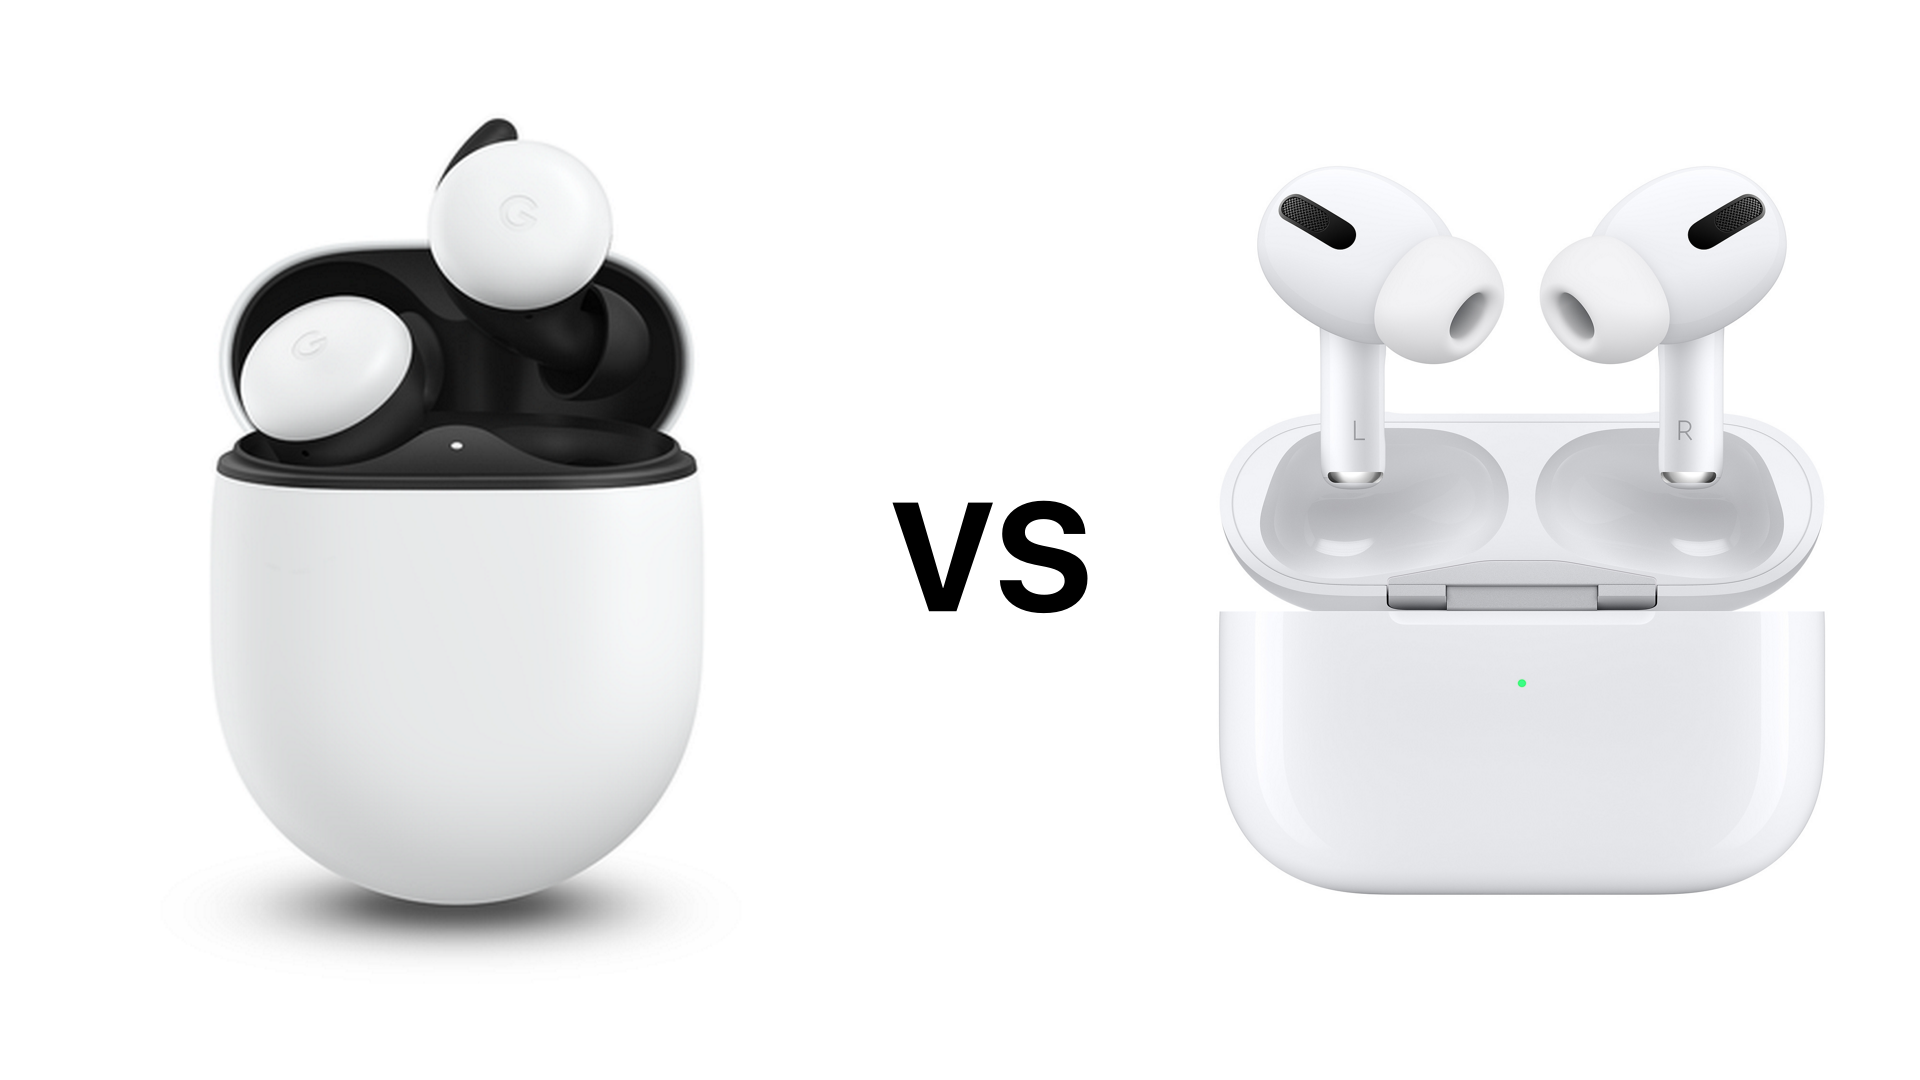 Google S Pixel Buds Vs Apple S Airpods Pro Which One Should You